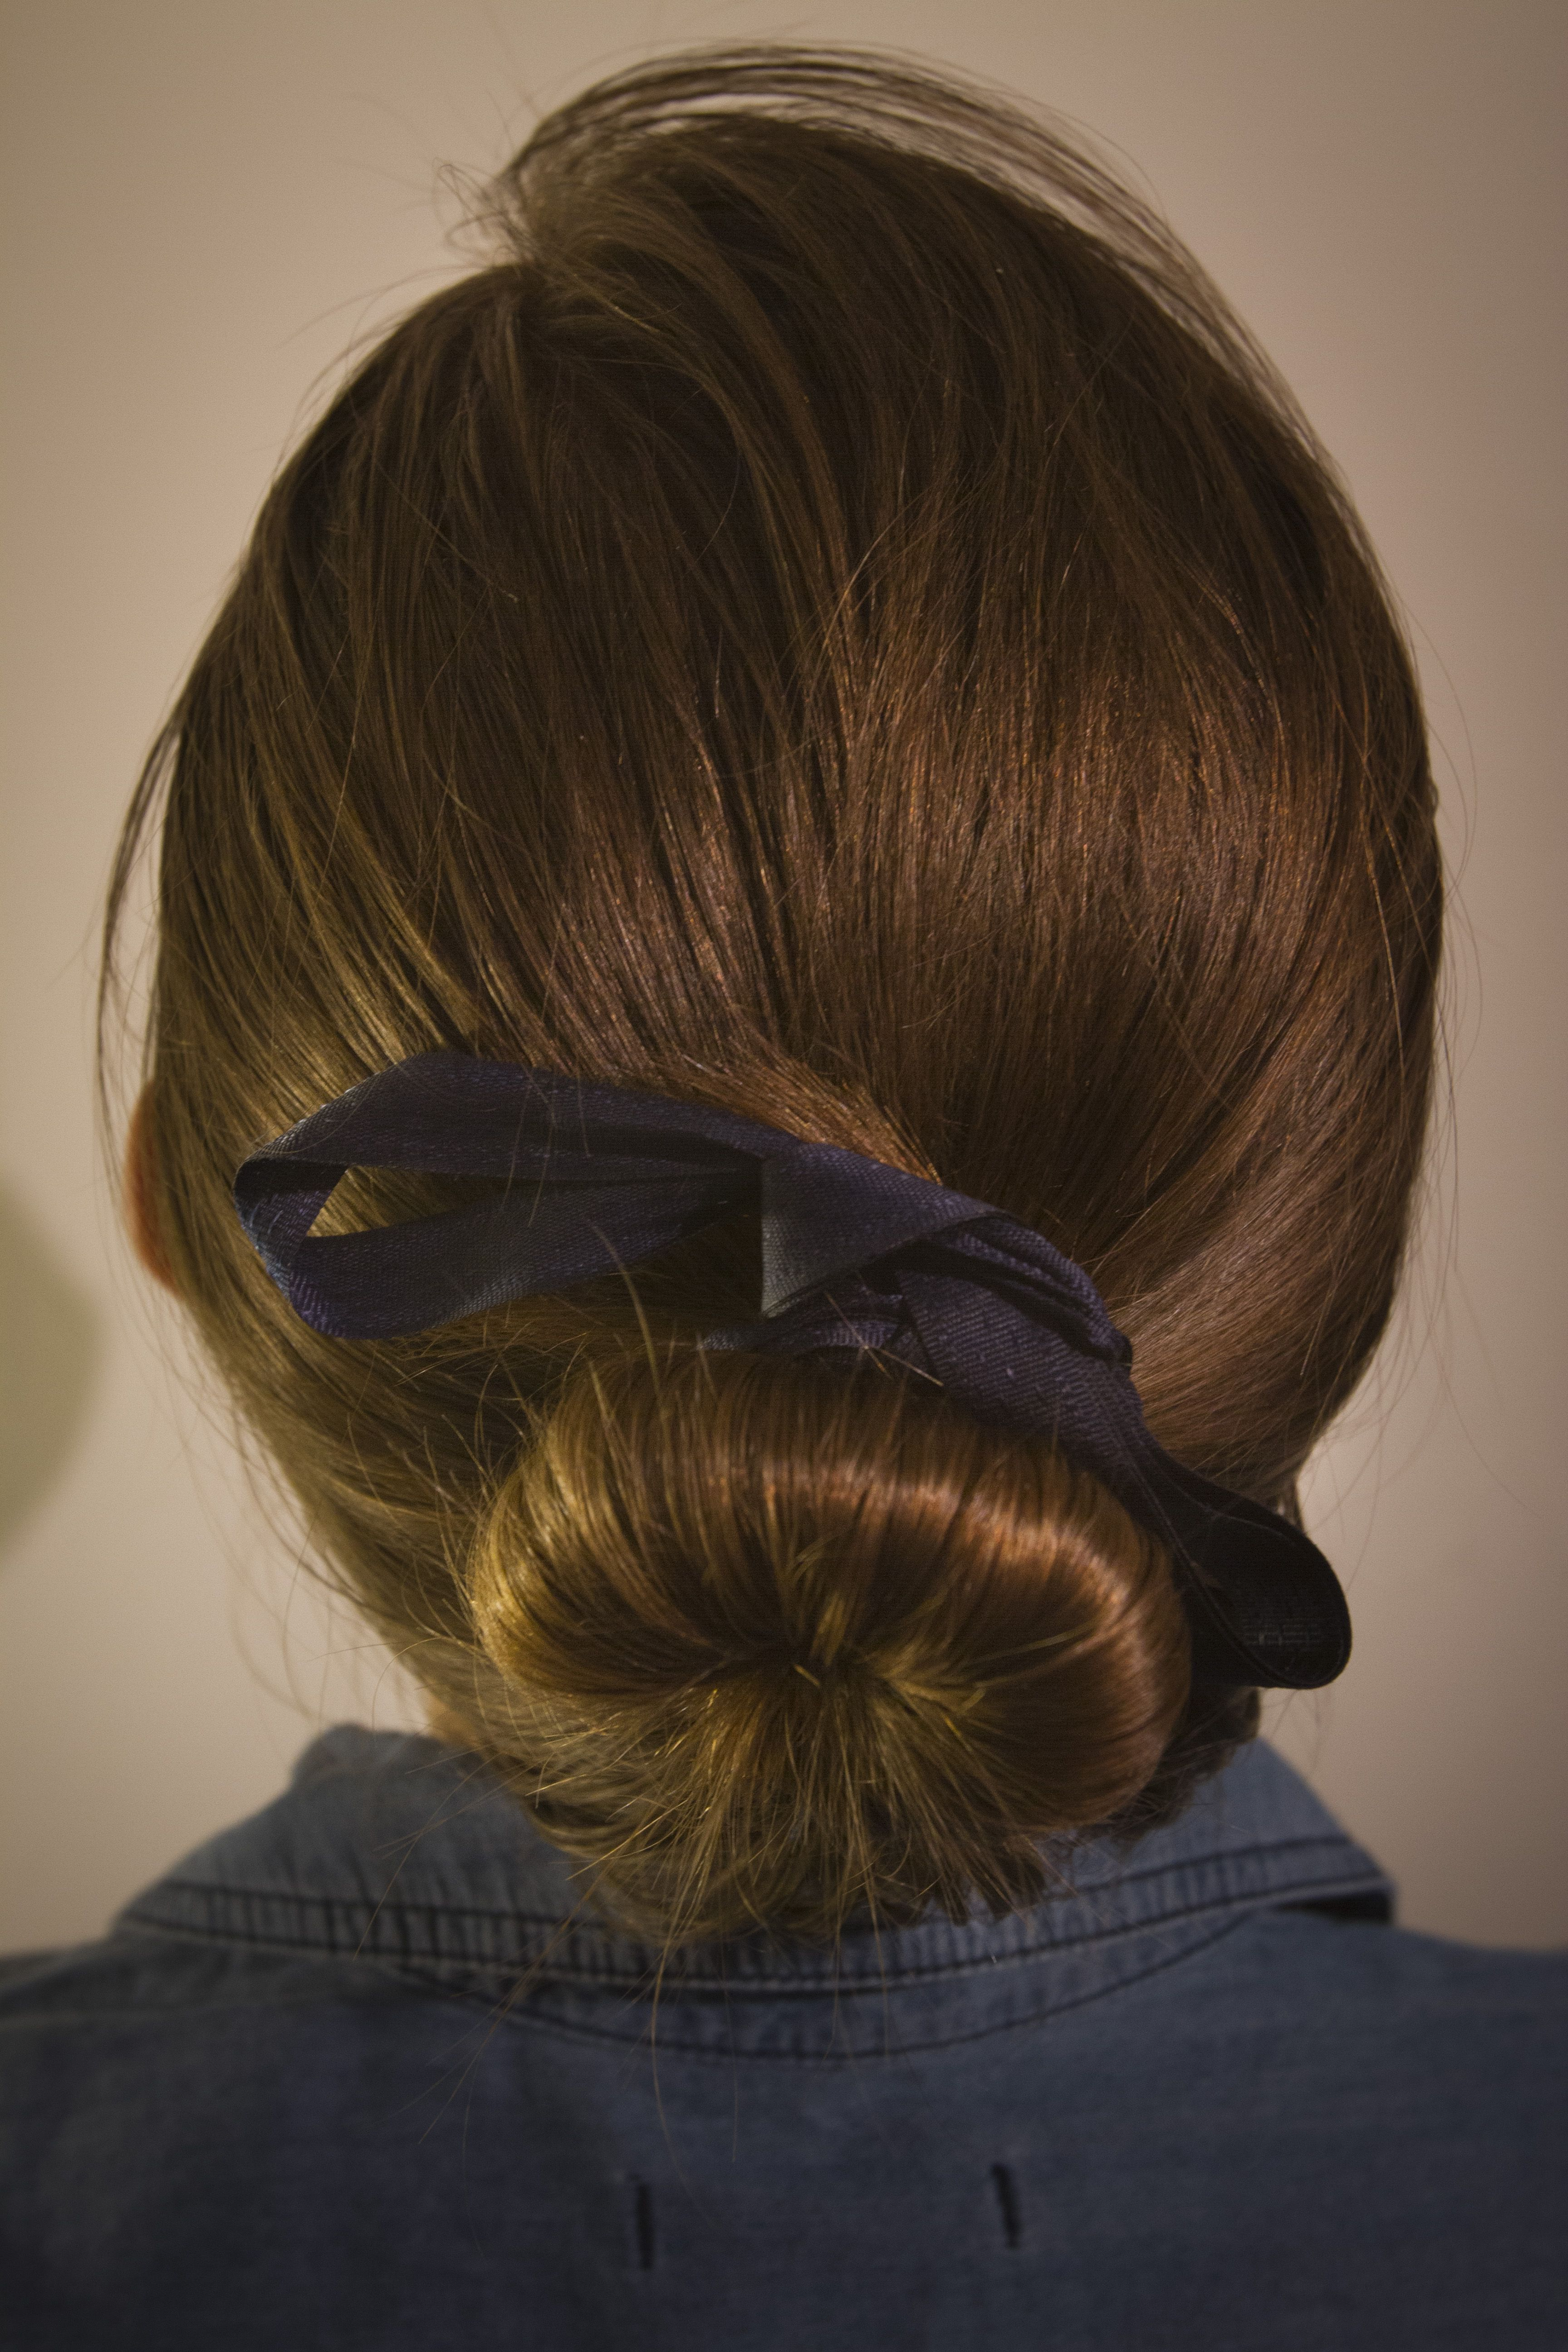 Accessorize your hairstyle with a simple chic ribbon beauty uc